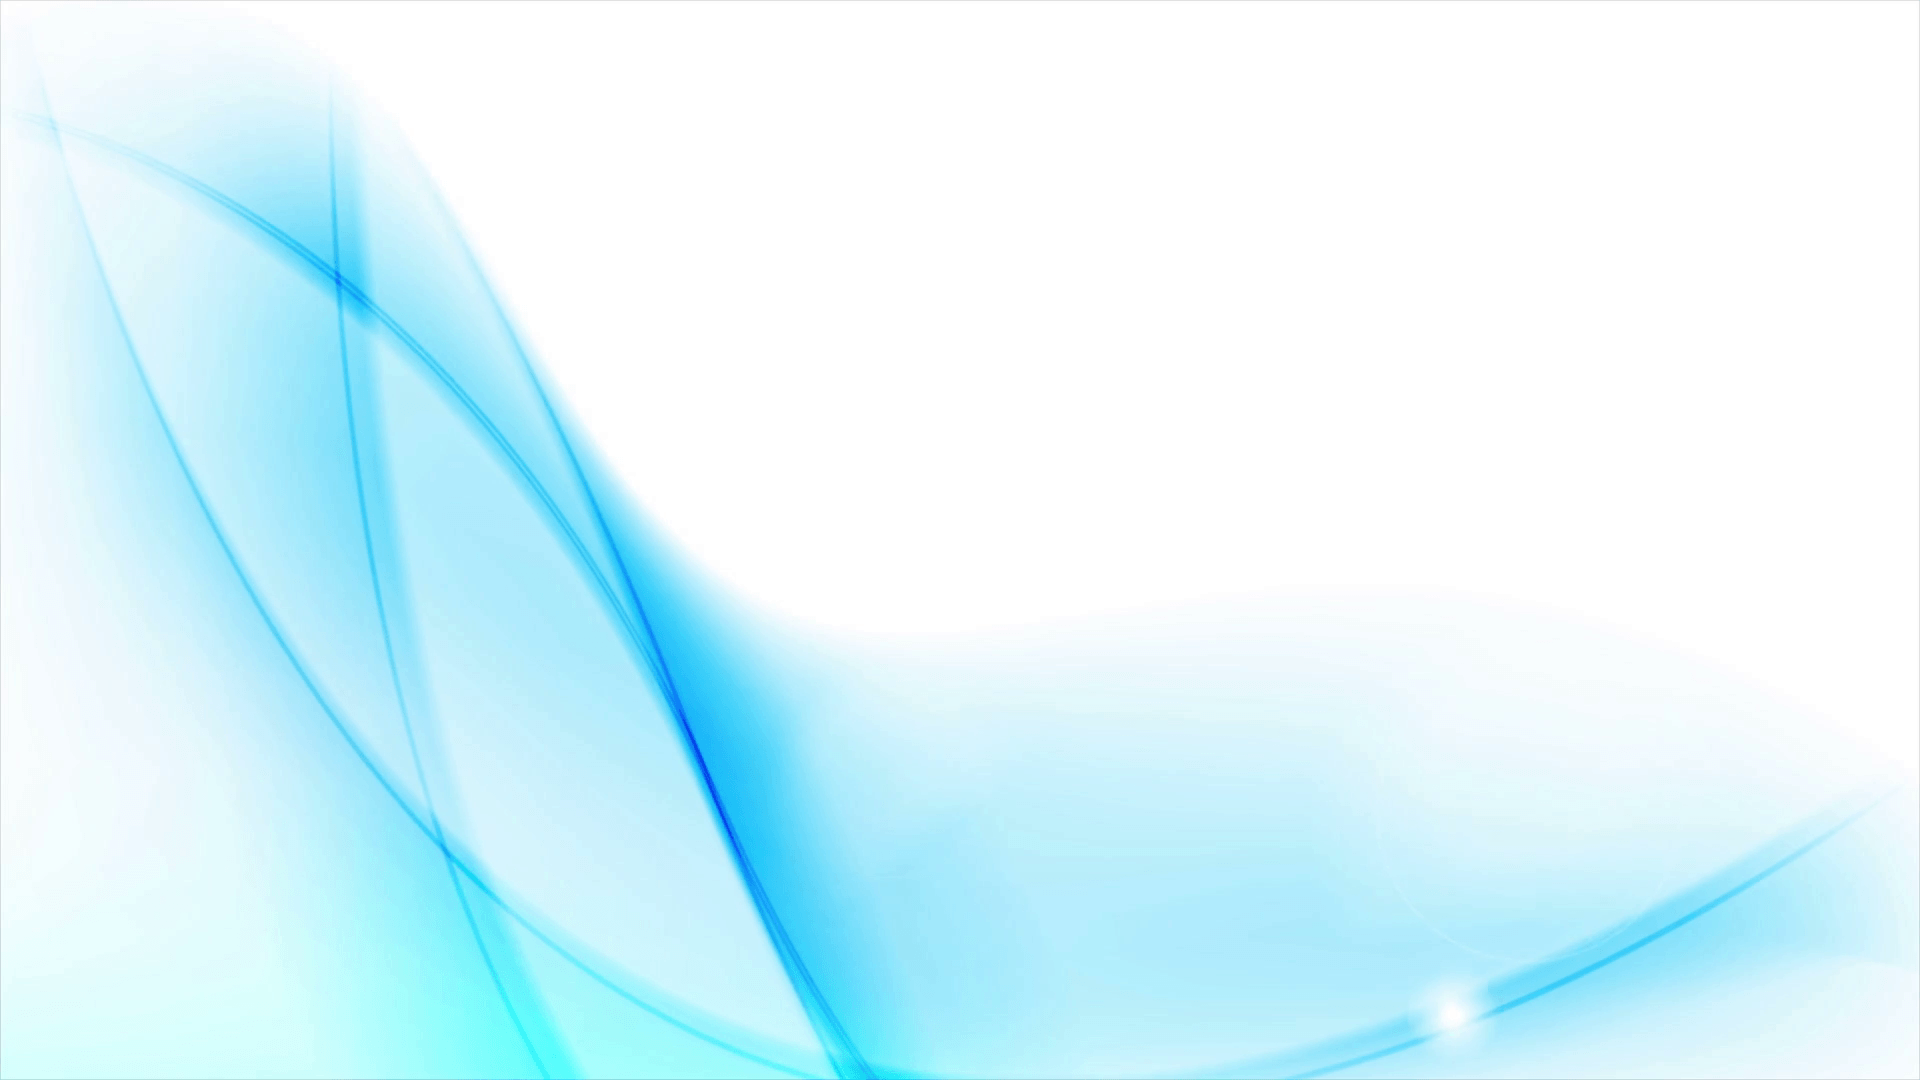 Hd White Background Images Wallpaper Cave